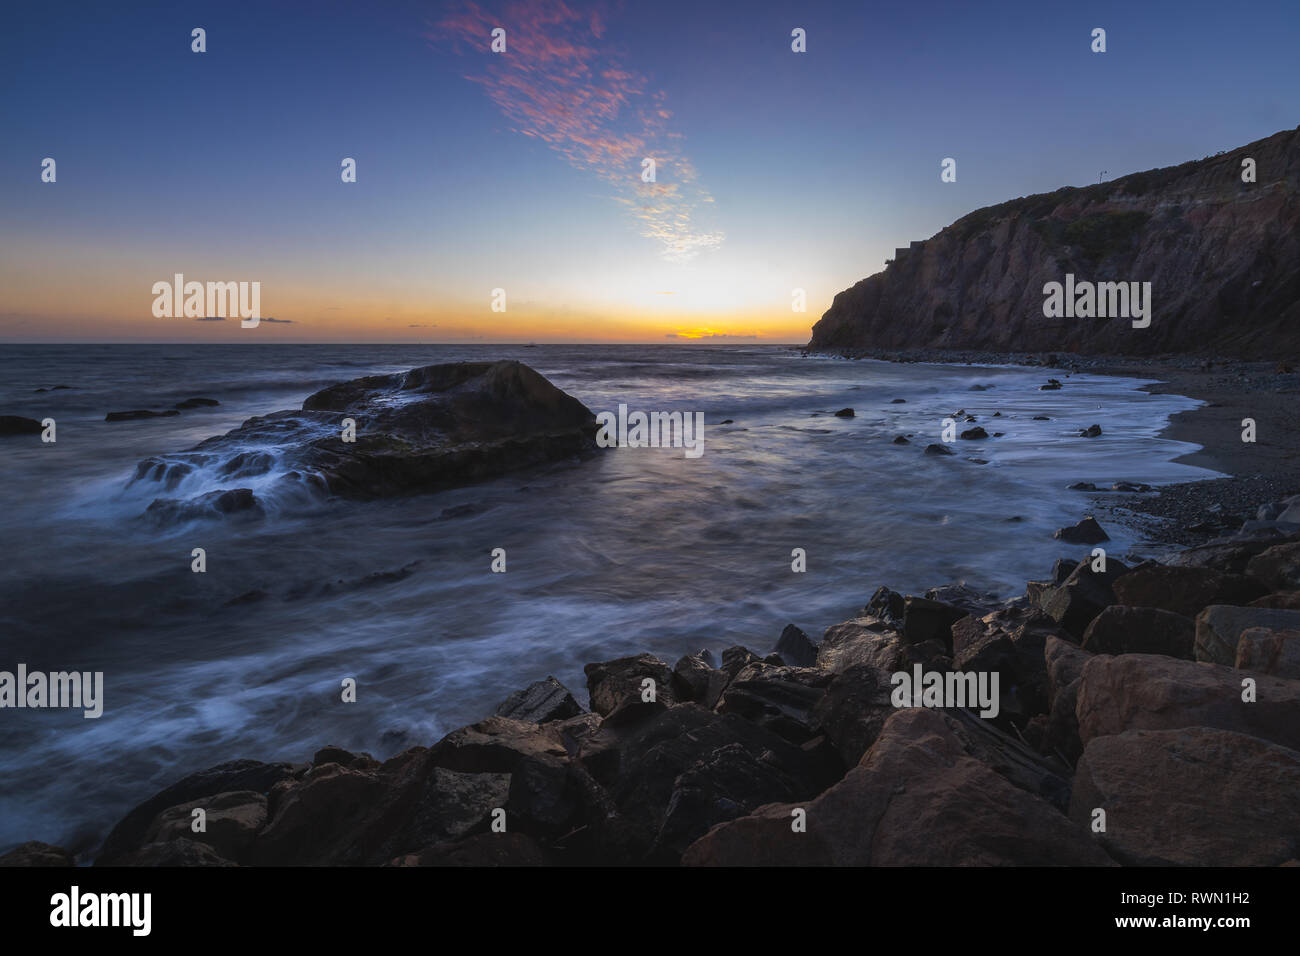 Long exposure photo of striking tall cliffs and waves crashing into a large rock formation after sunset, Dana Point, California - Stock Image